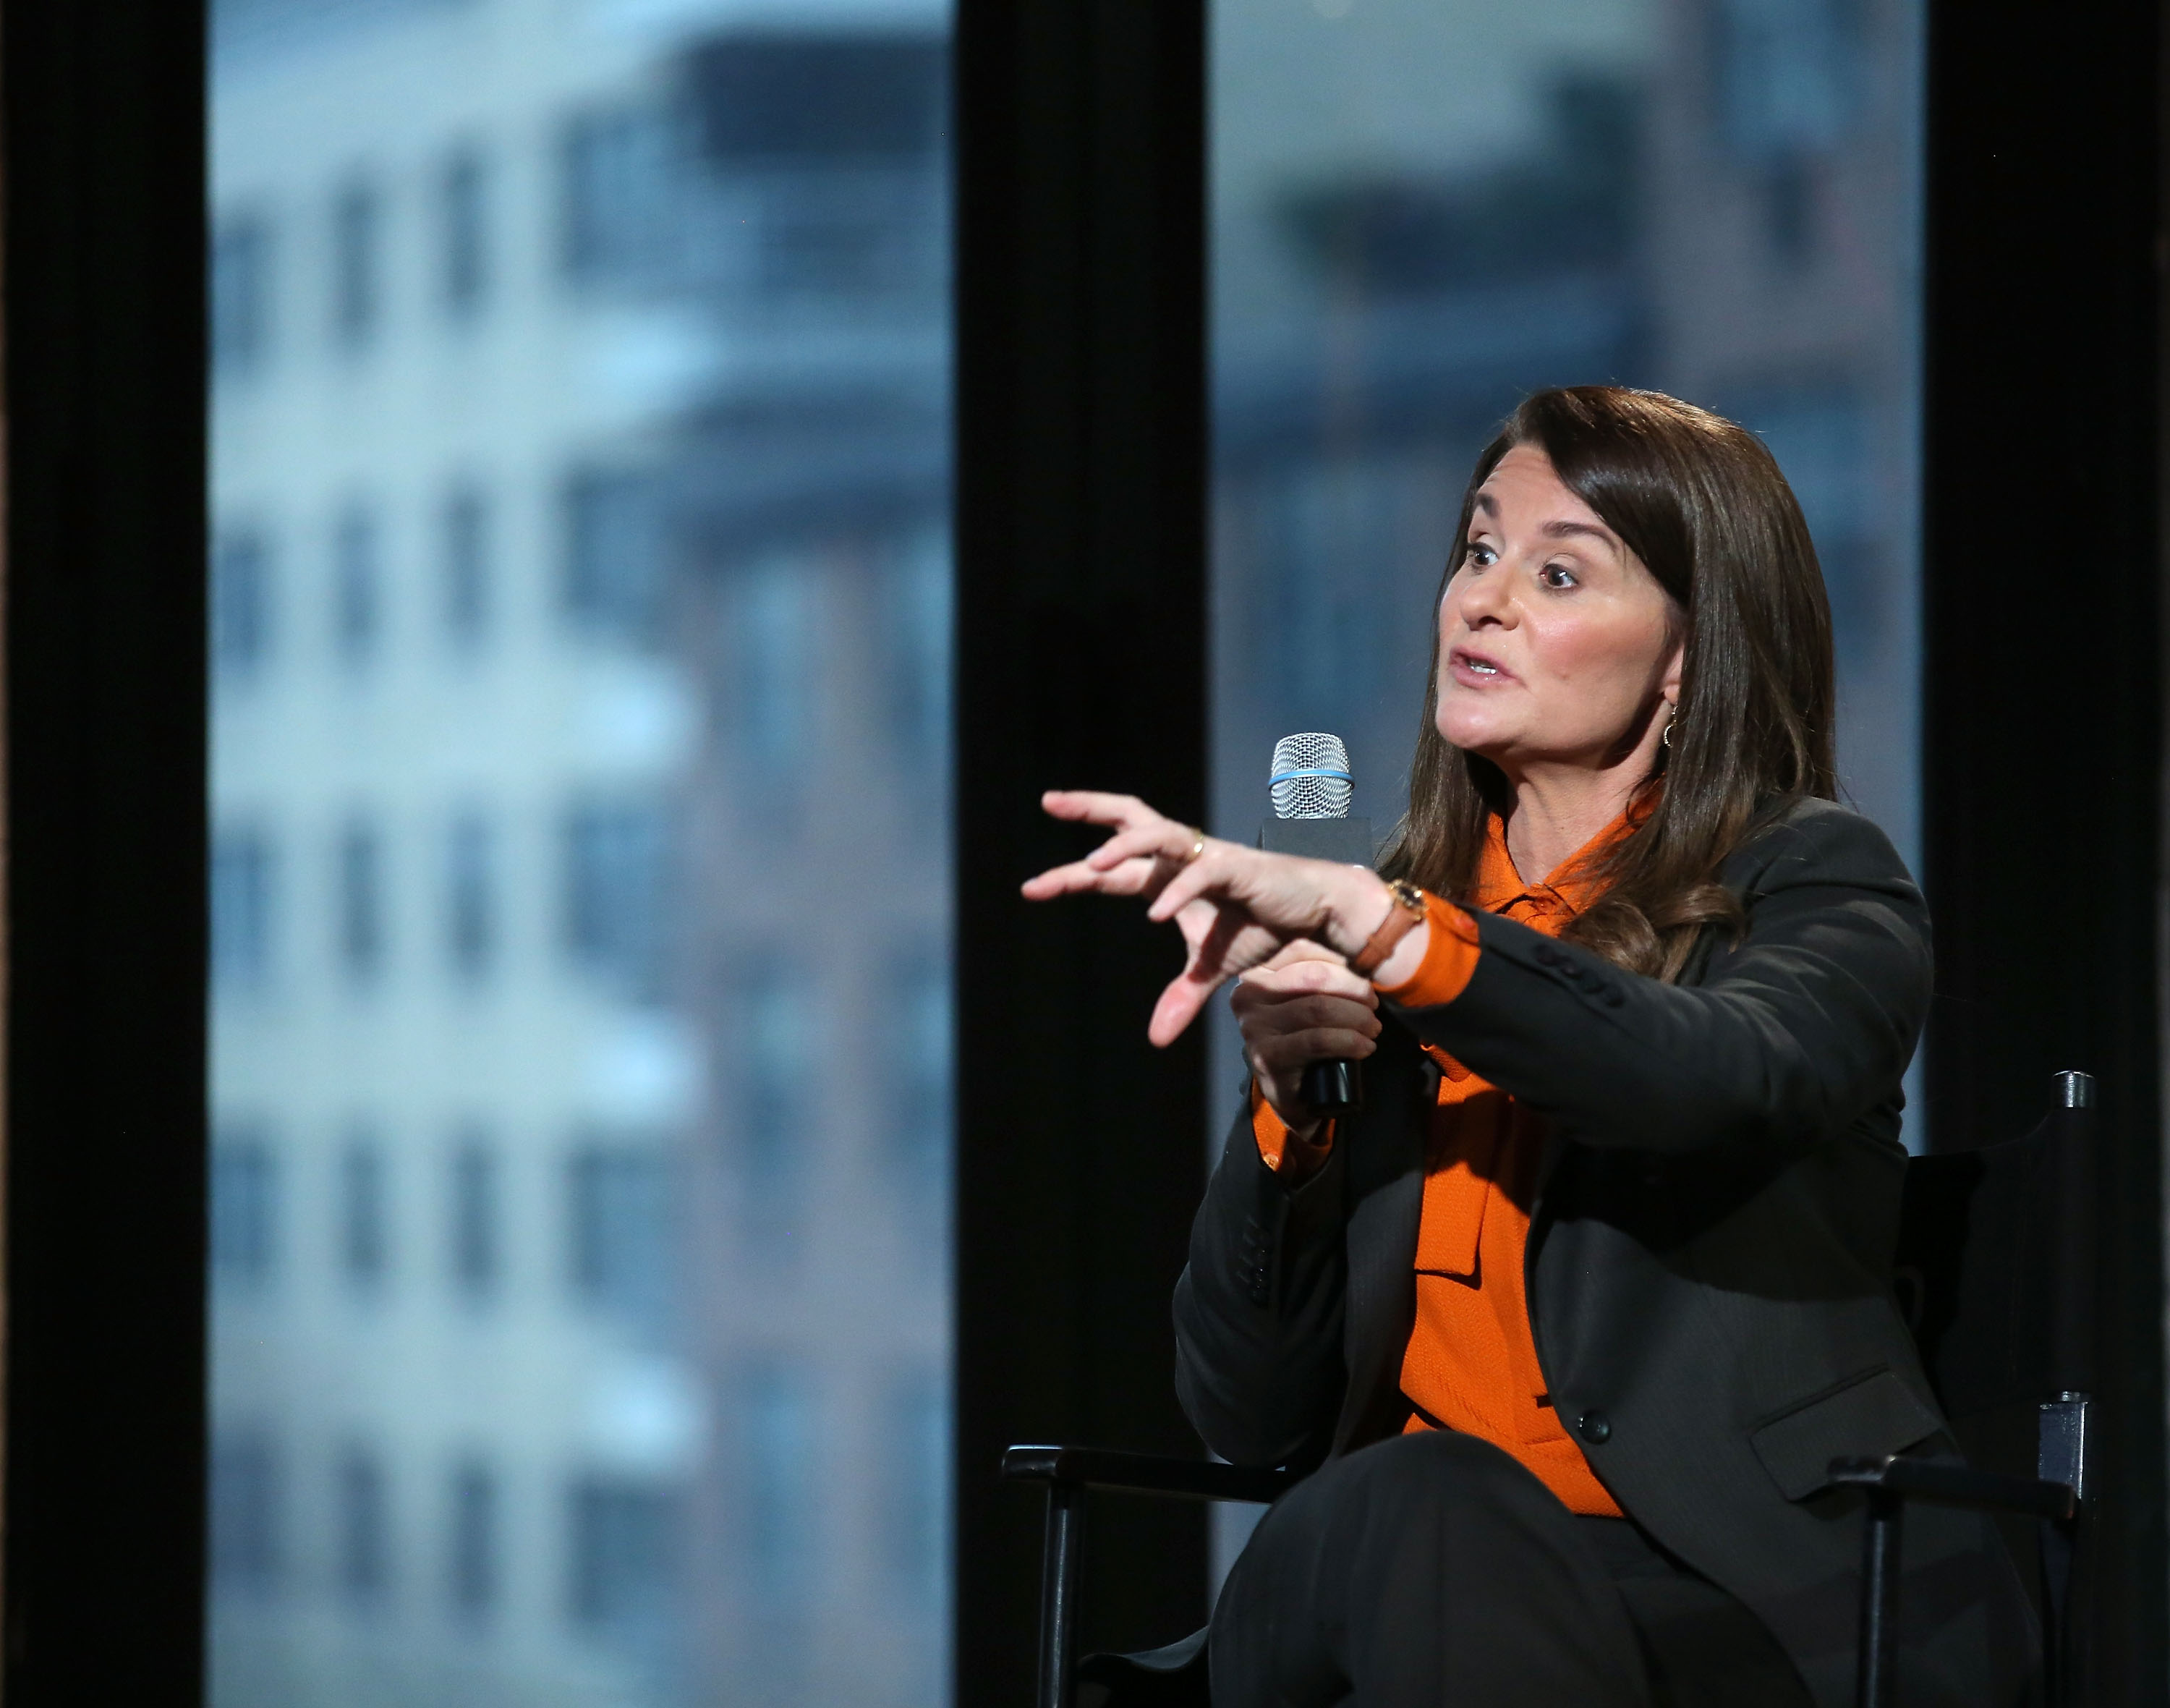 Filling bellies: Melinda Gates and the Gates Foundation are going after one of the leading killers of babies